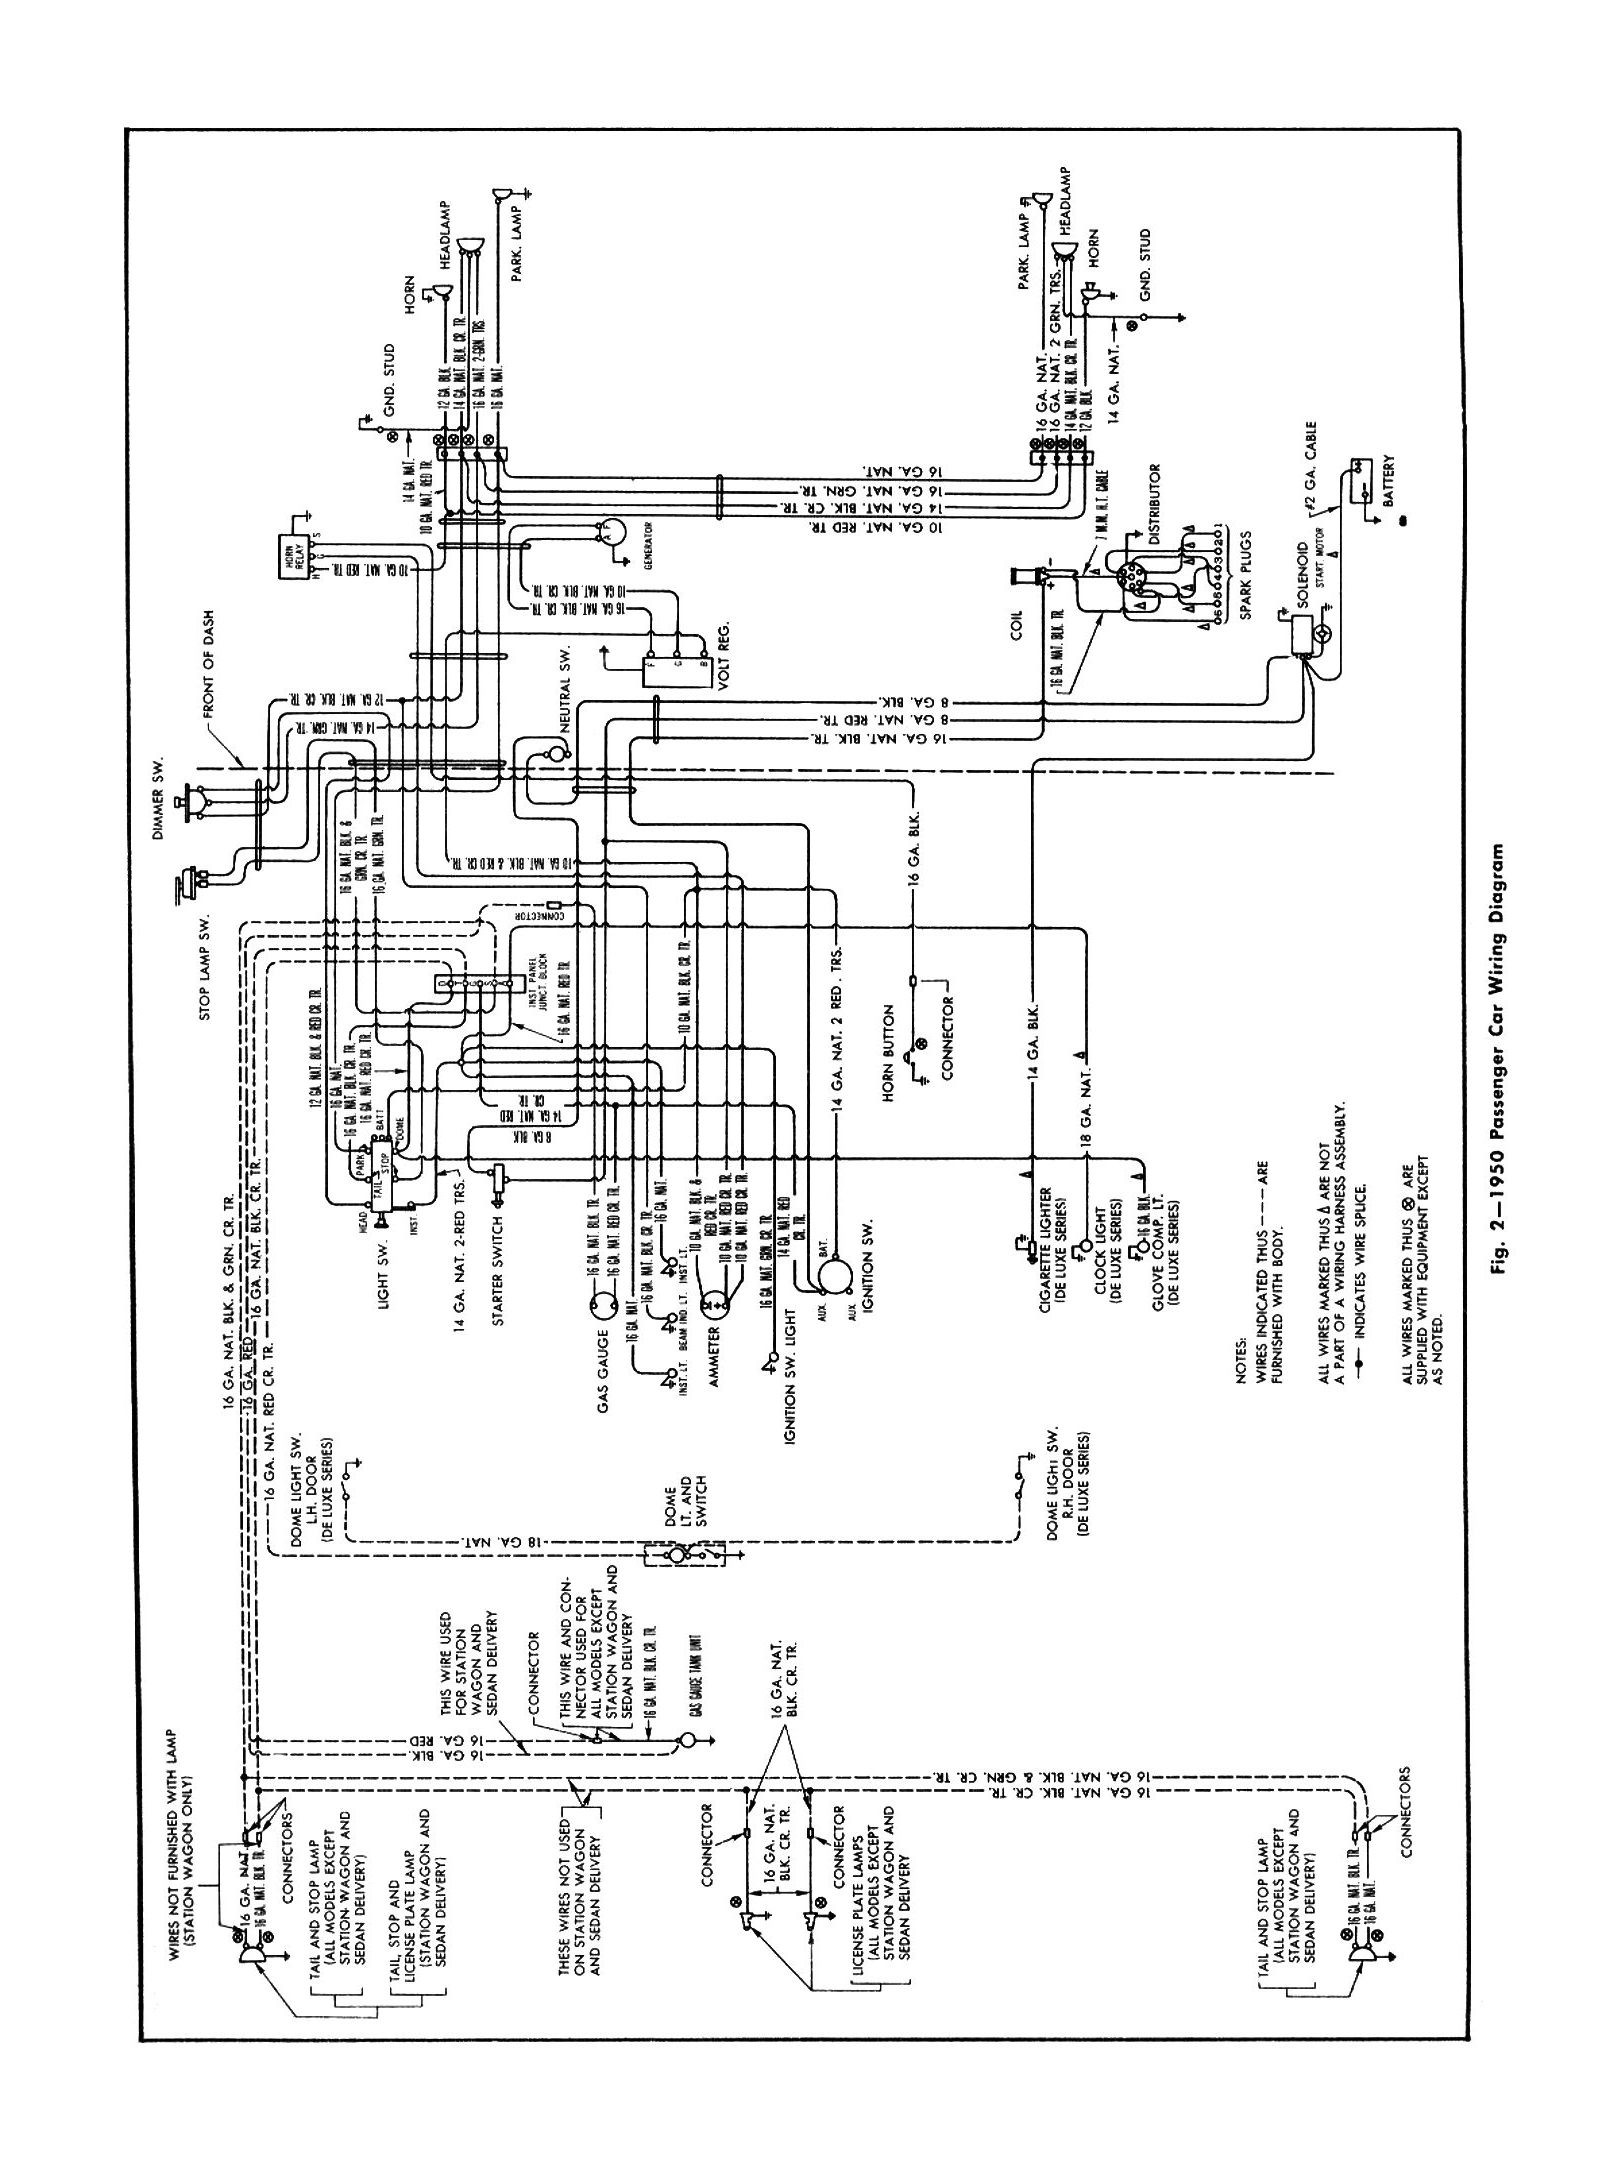 299281 on 1950 chevy wiring diagram